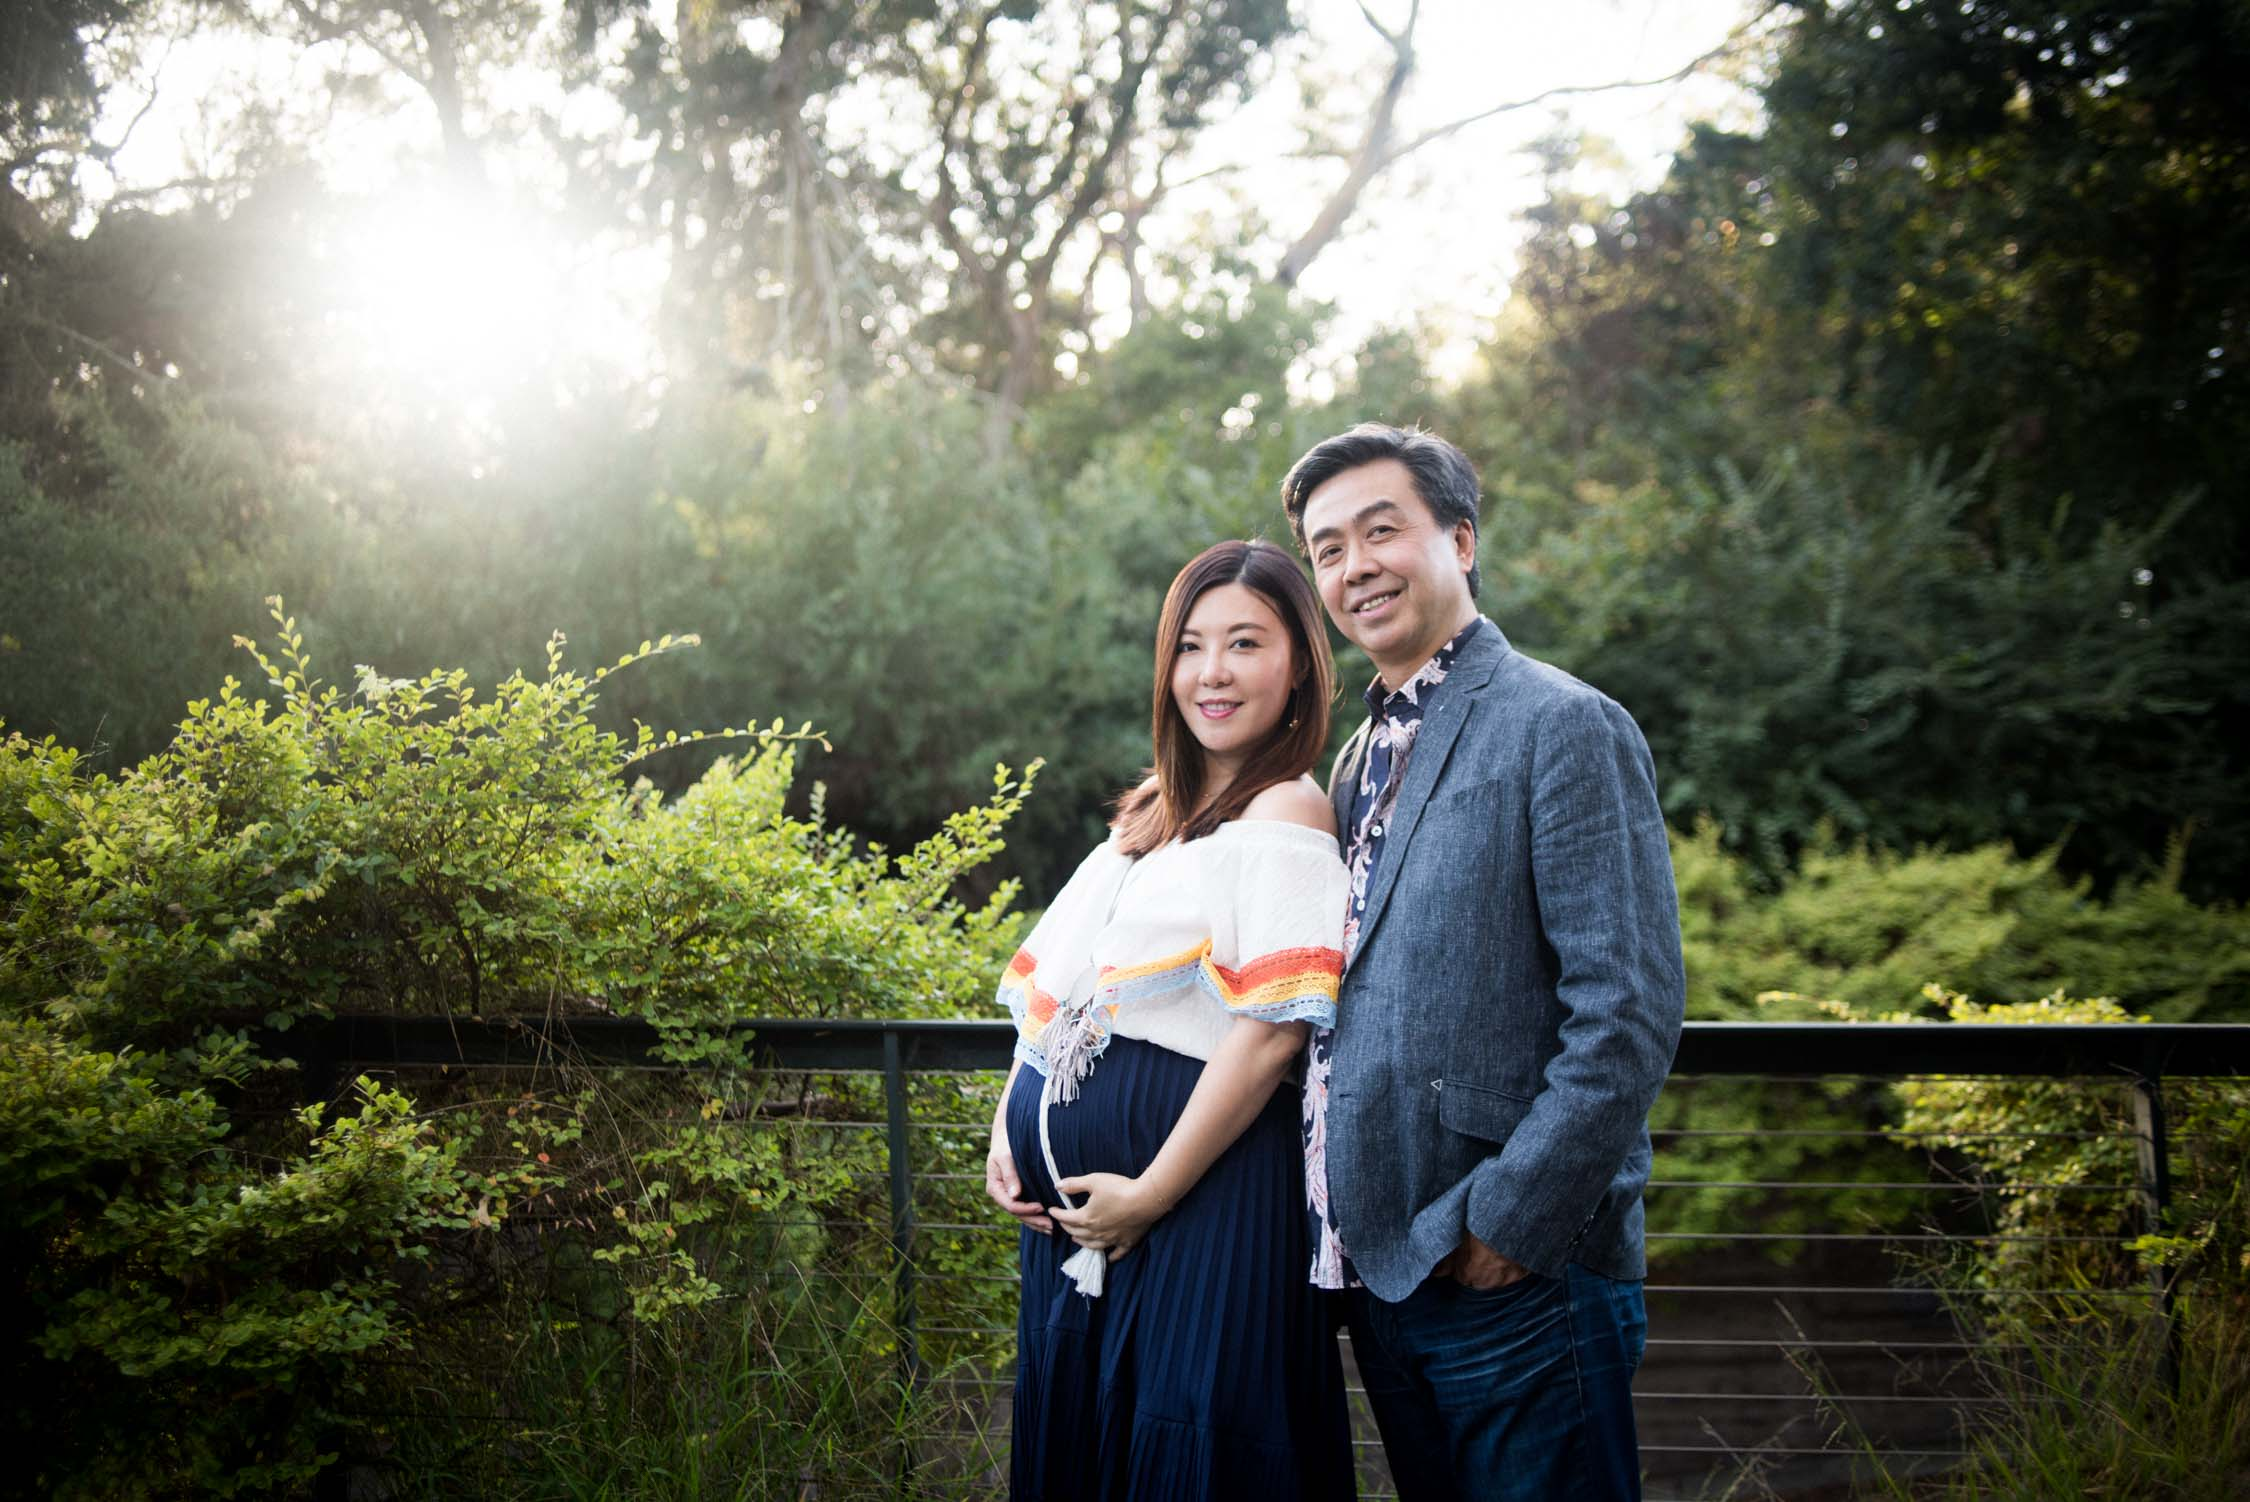 16_goldengatepark_maternity_photographer.jpg